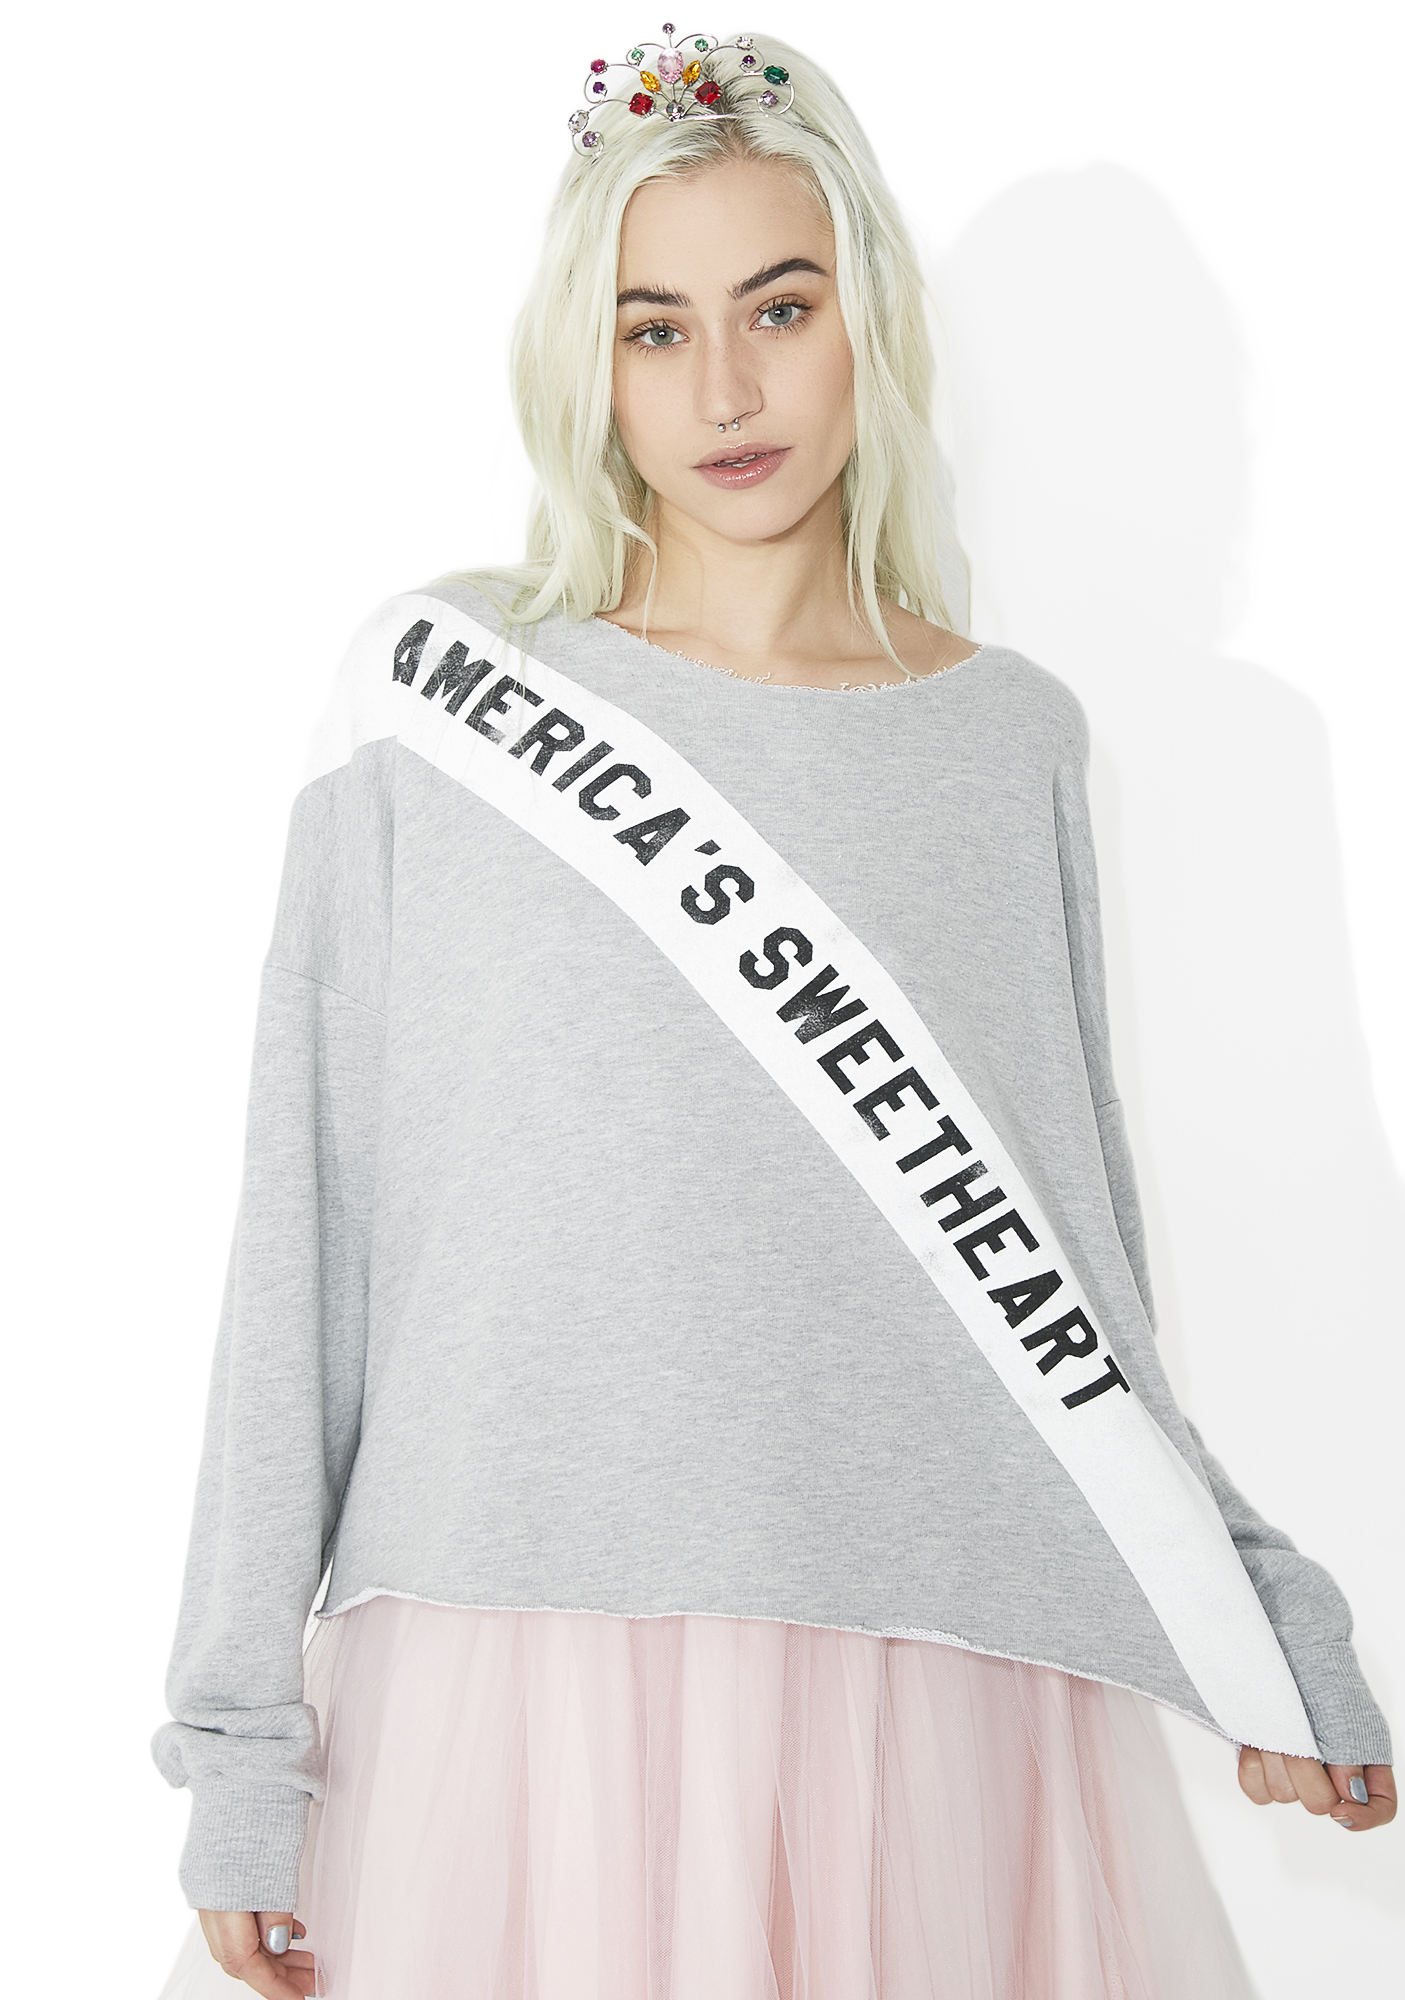 Wildfox Couture America's Sweetheart 5AM Sweatshirt